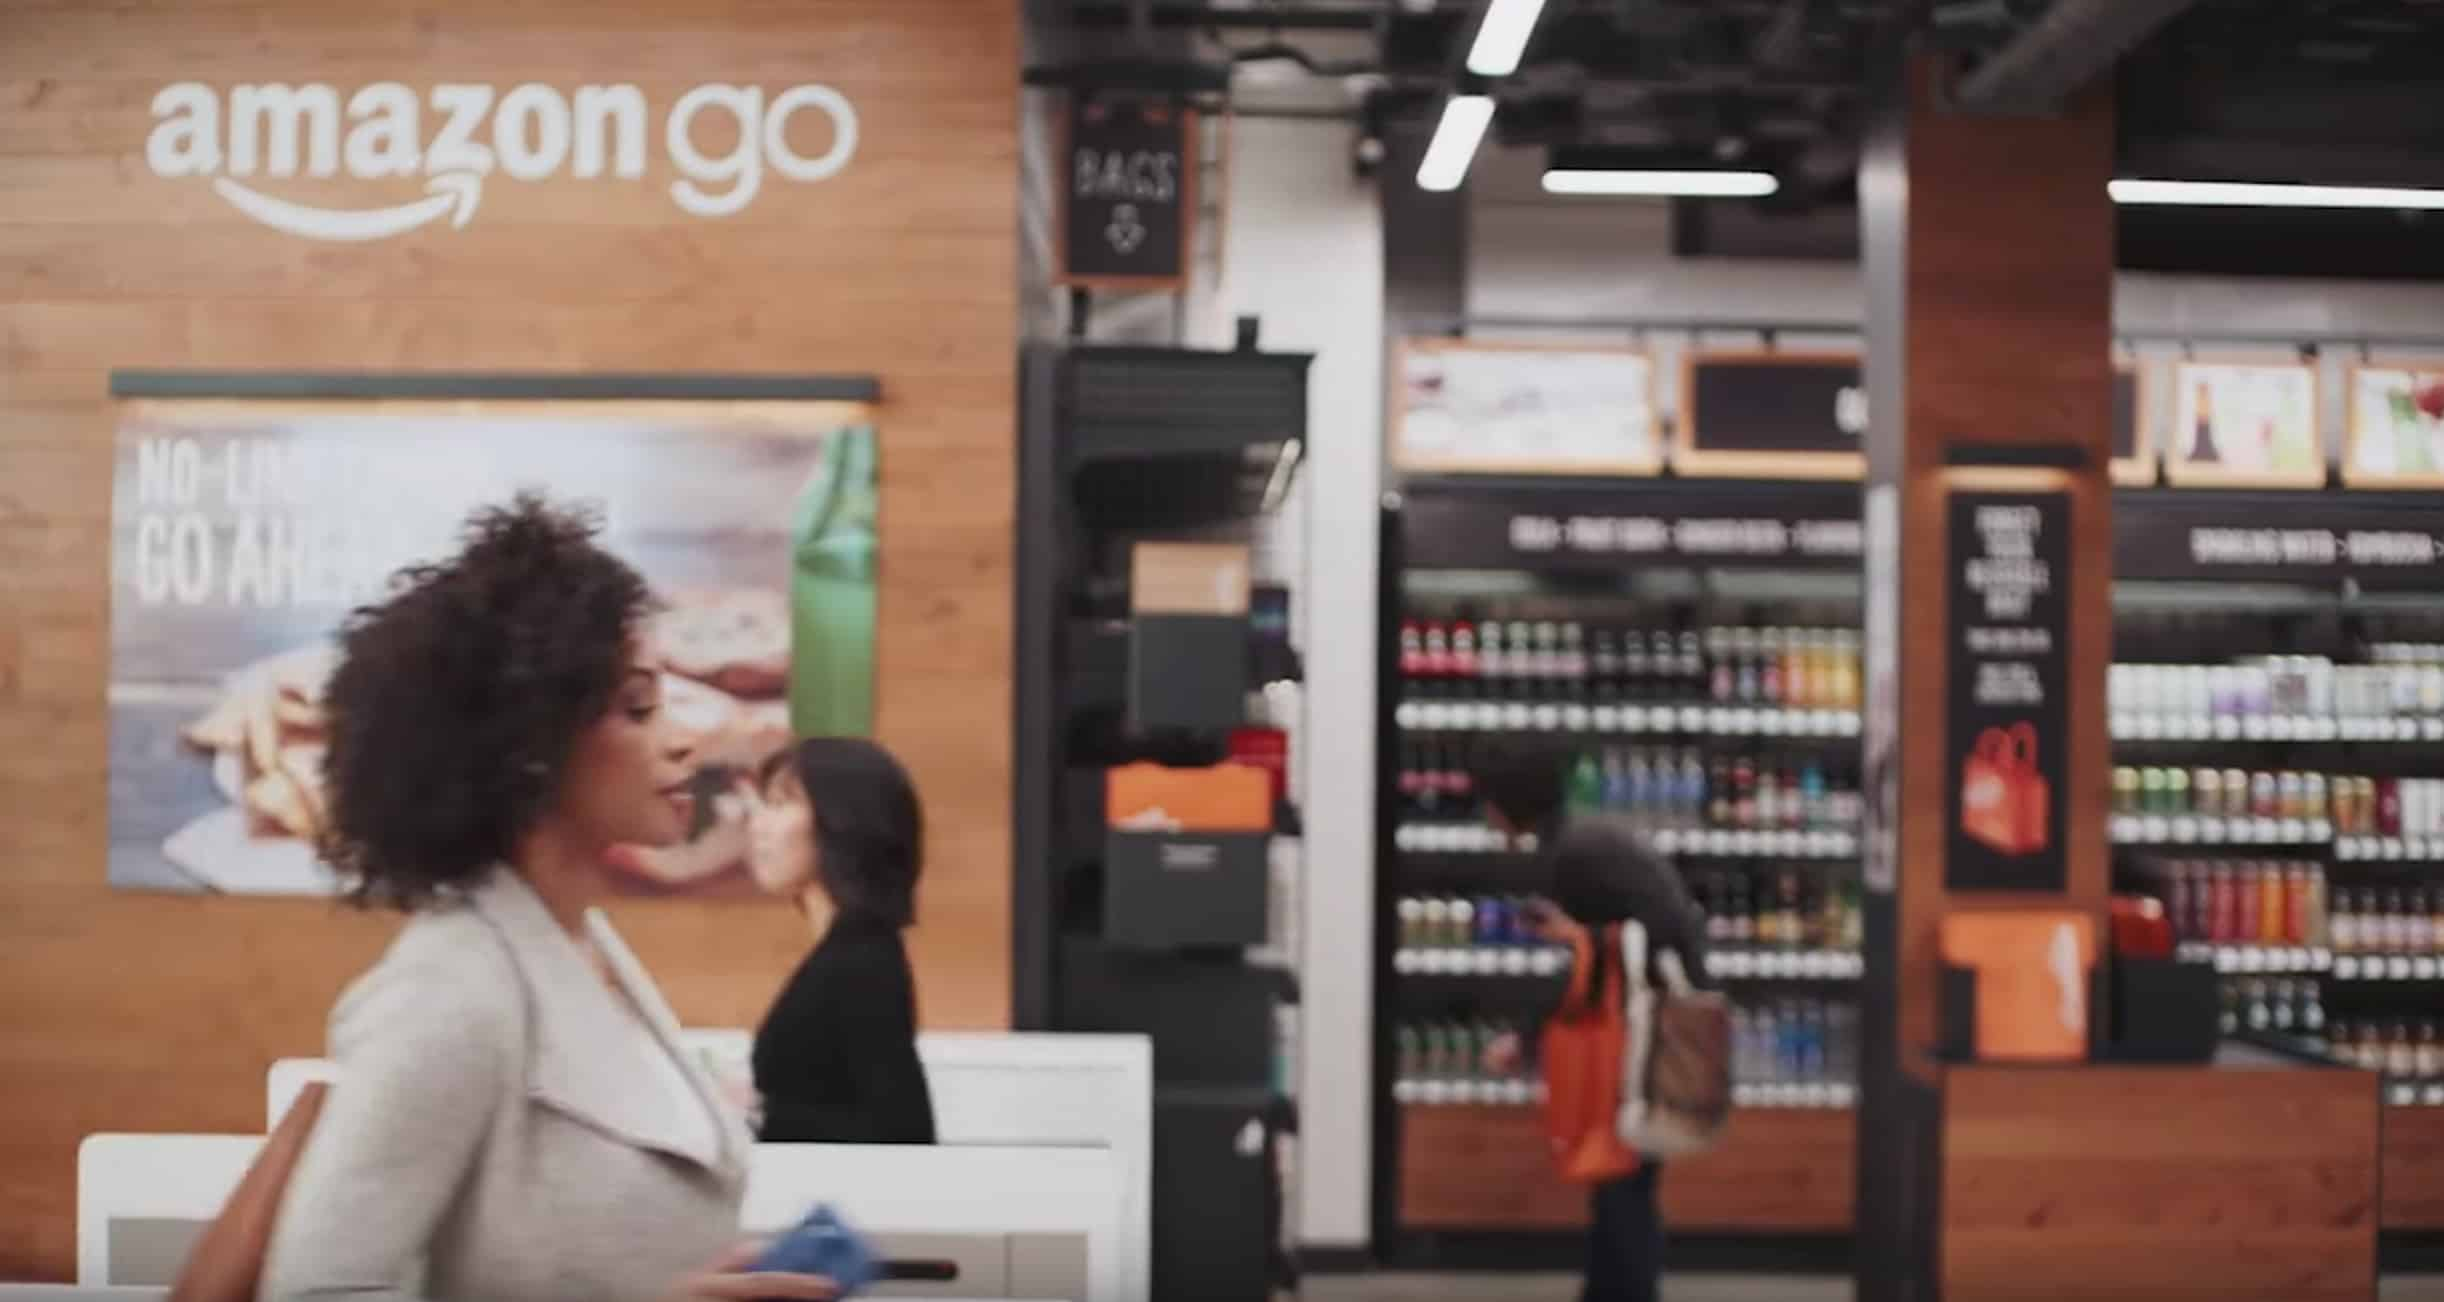 First Amazon Go Store Opens Publically